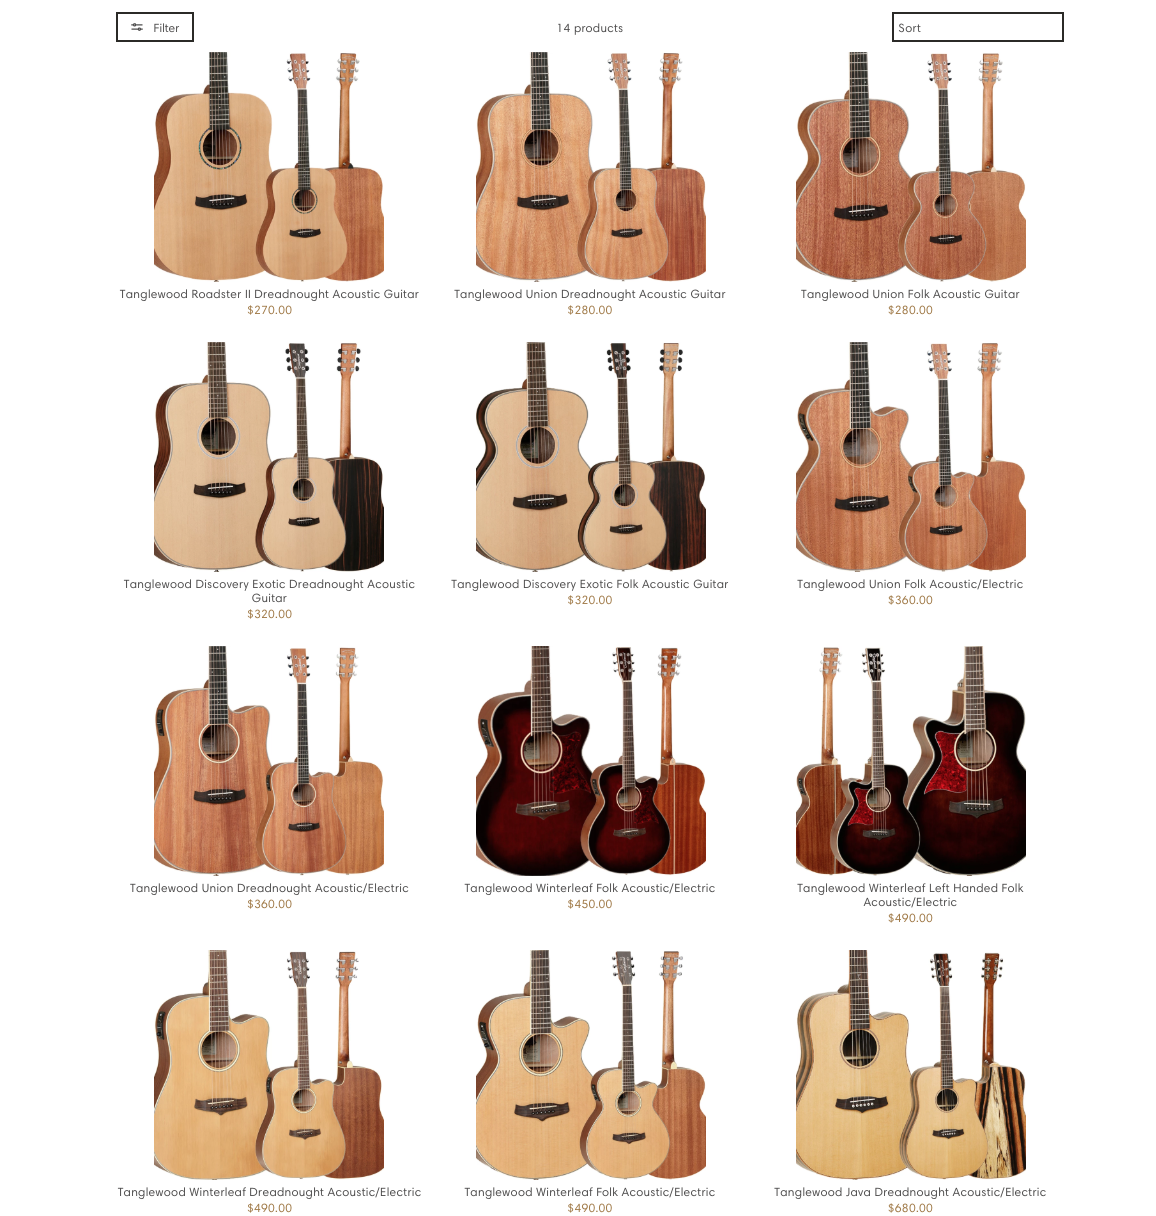 Shop online for Tanglewood guitars